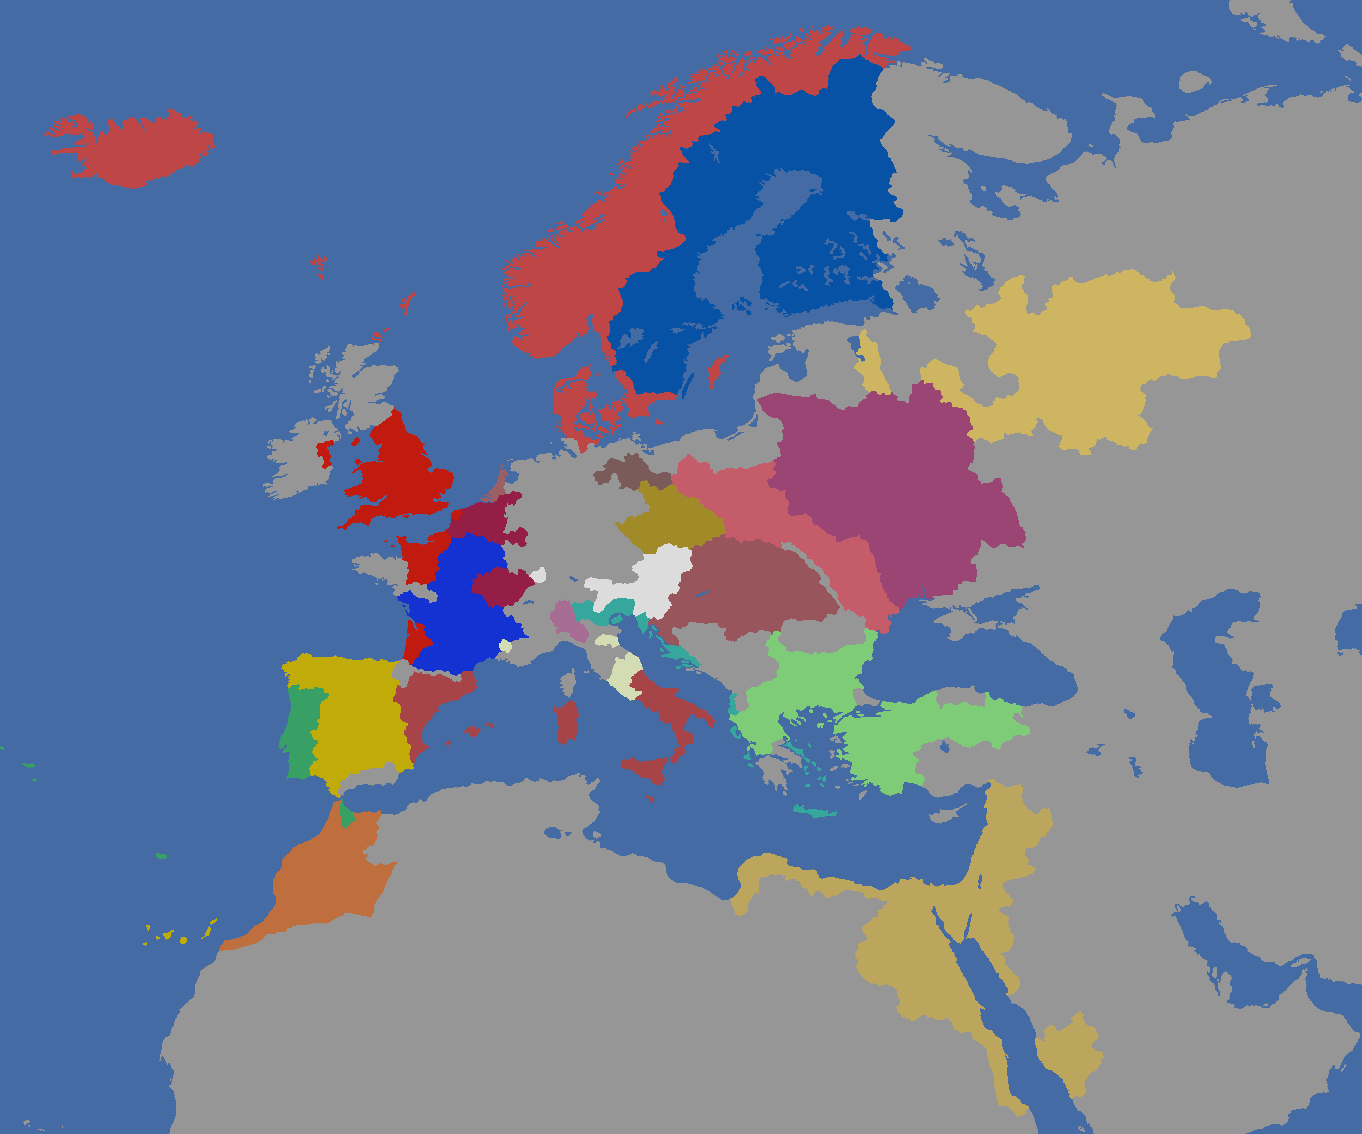 eu4 rule britannia dev clash start.png